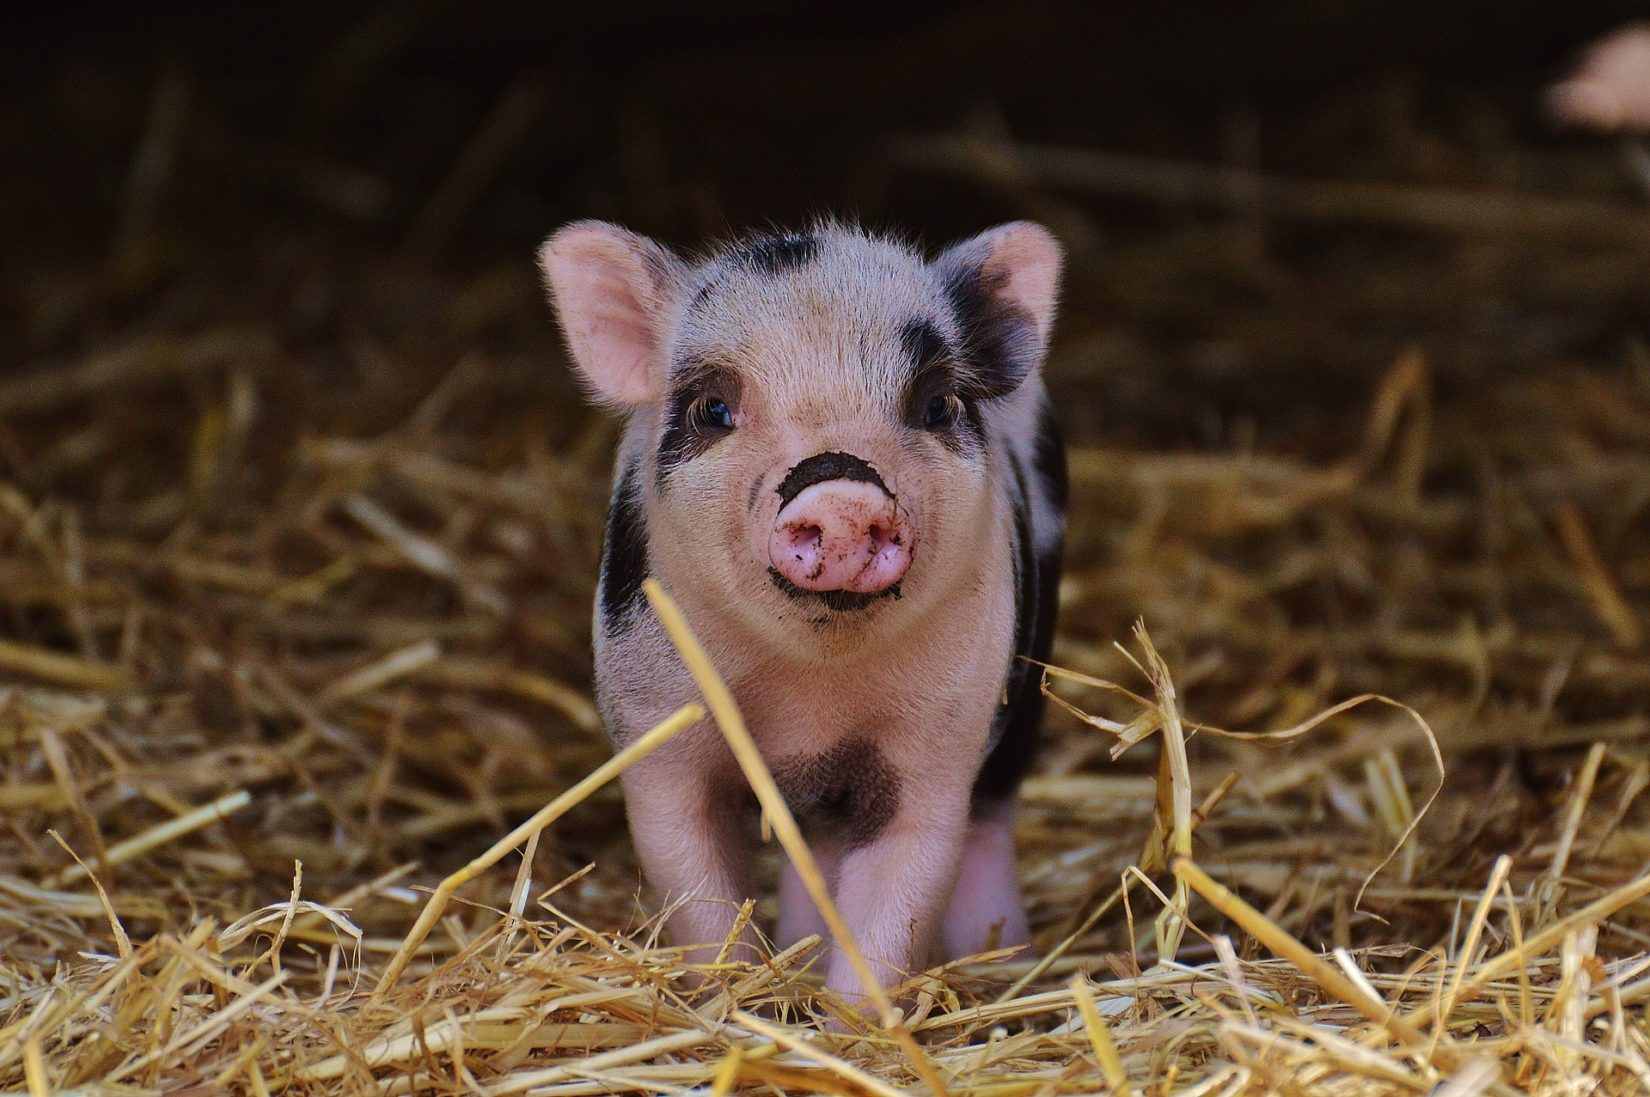 Black Miniature Pig